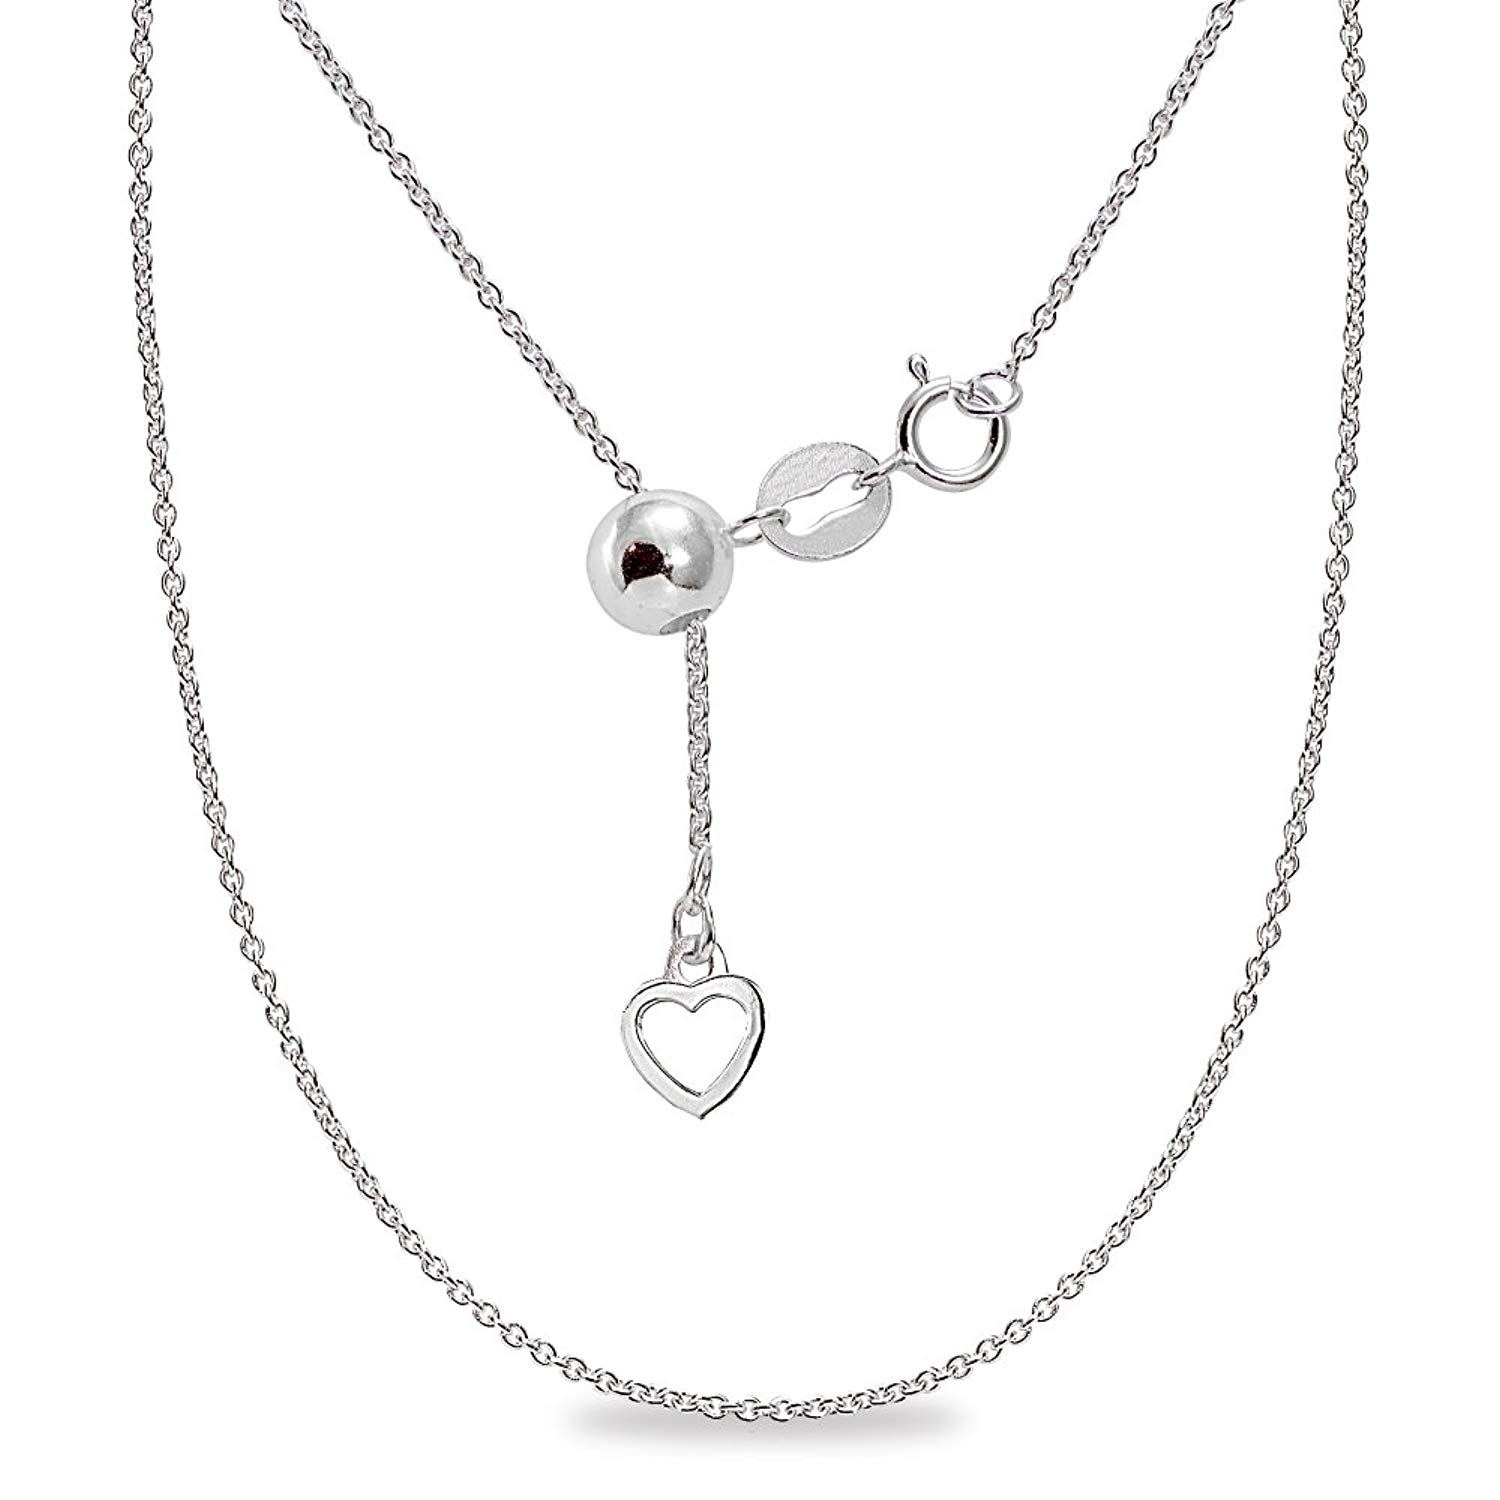 925 Sterling Silver 3mm Polished Rolo Link Chain Necklace 7-24